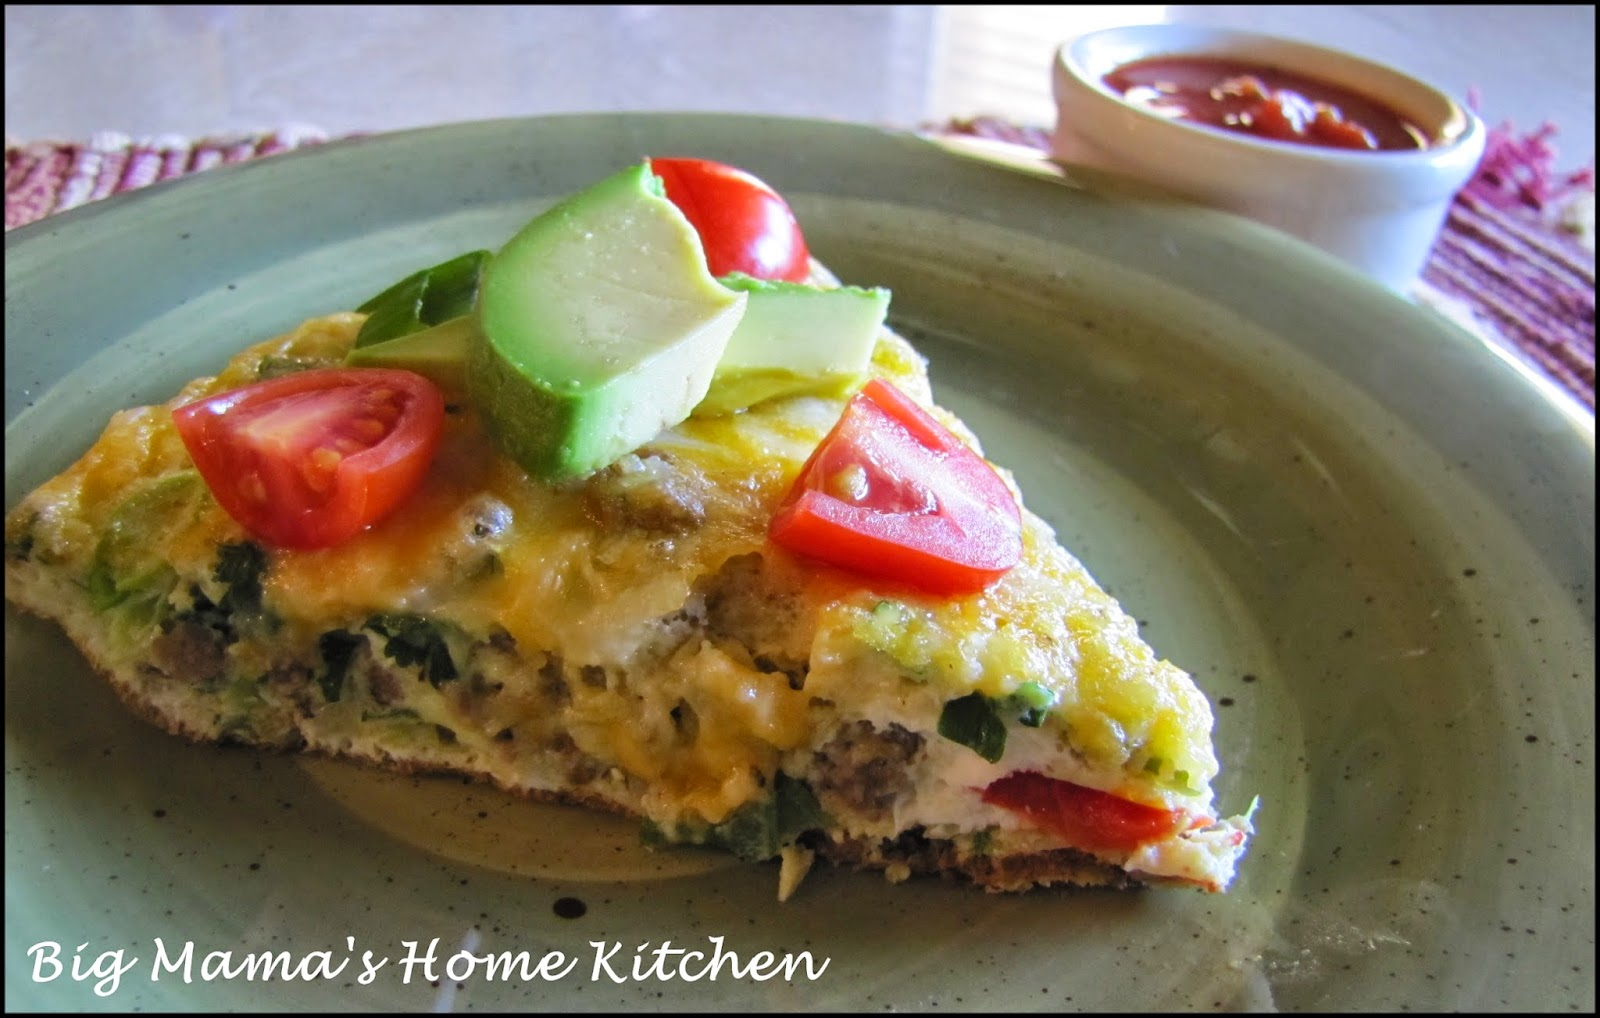 Big Mama's Home Kitchen: Mexican Style Frittata